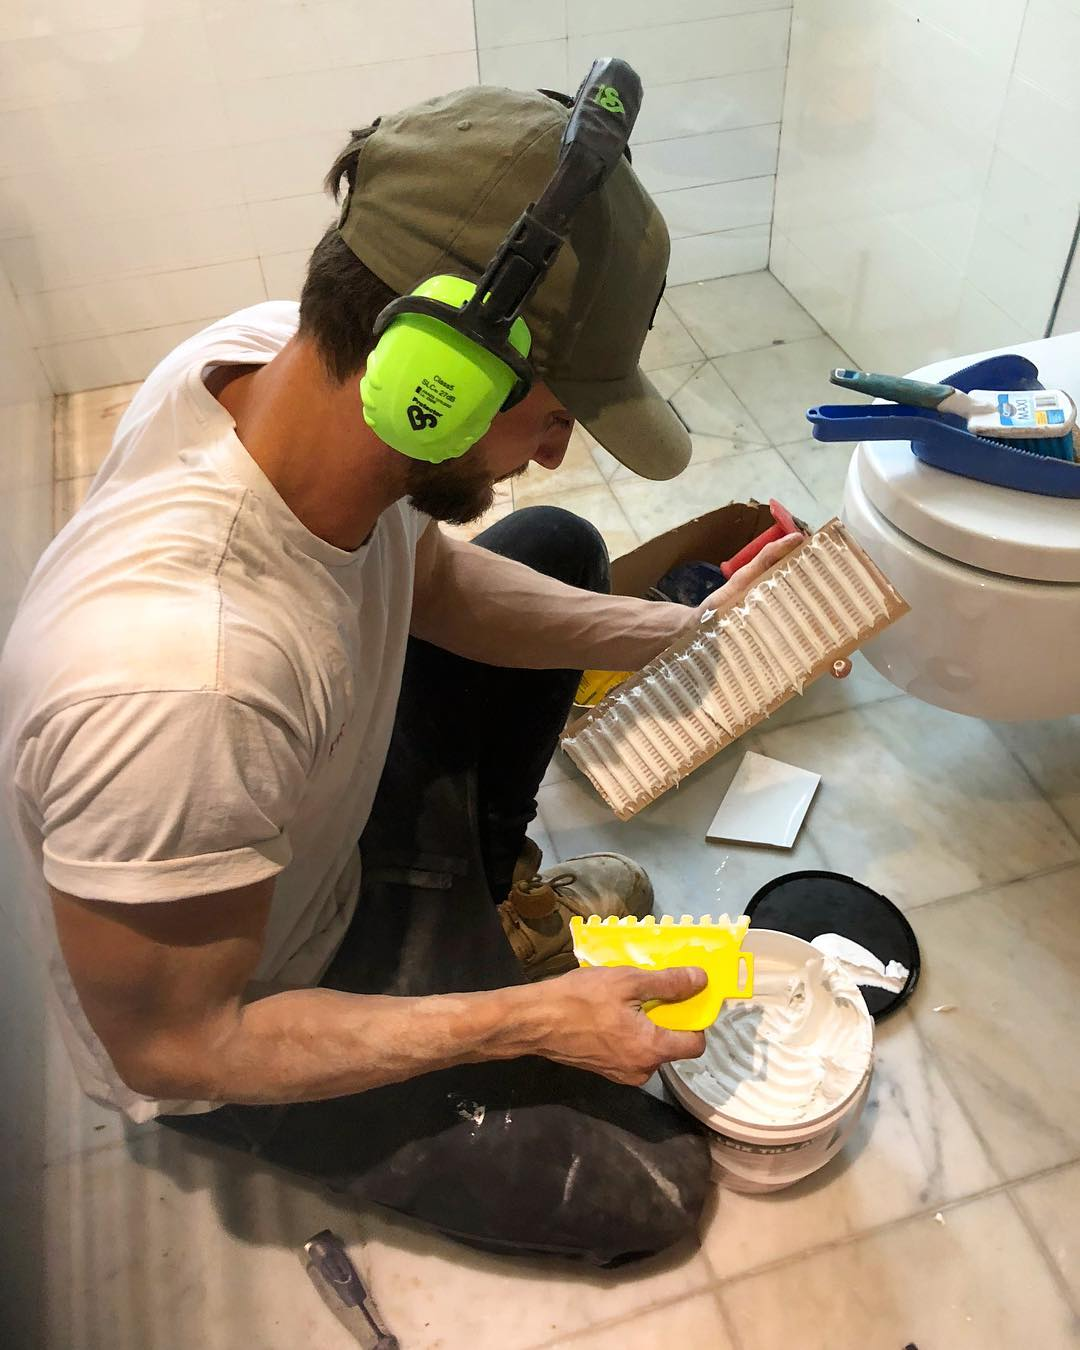 A worker of Pro Projects adding glue to tiles in a bathroom in the Eastern Suburbs